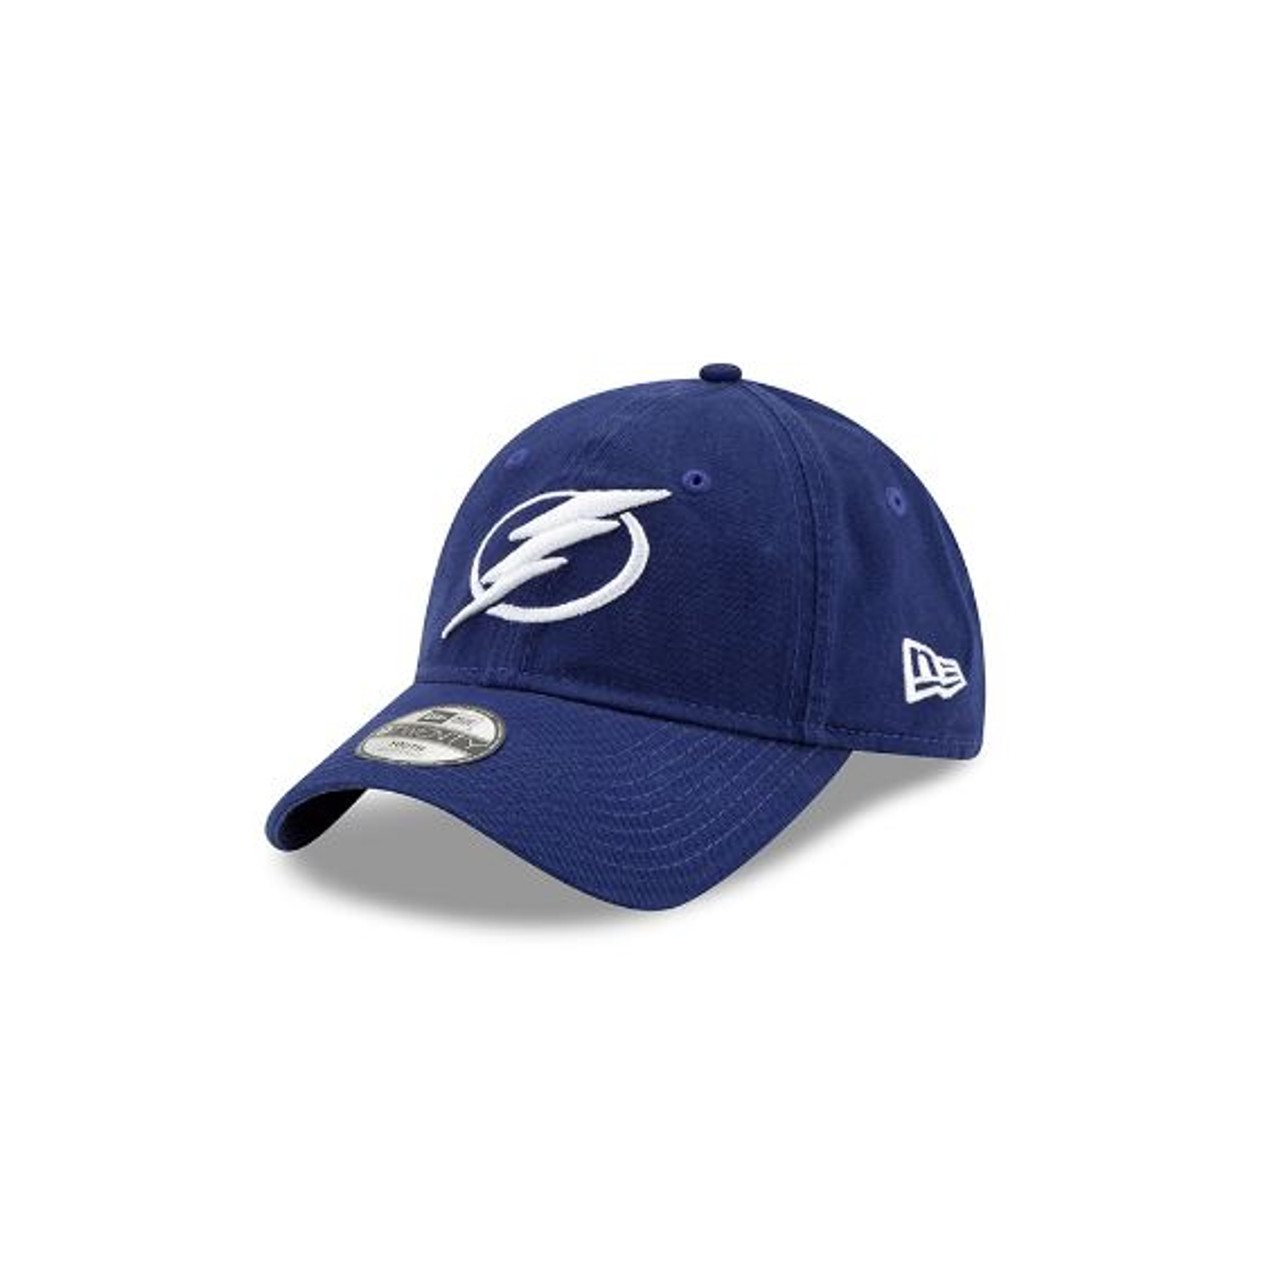 new product 44da5 95fa2 Toddler Tampa Bay Lightning New Era Core Classic Hat. New Era